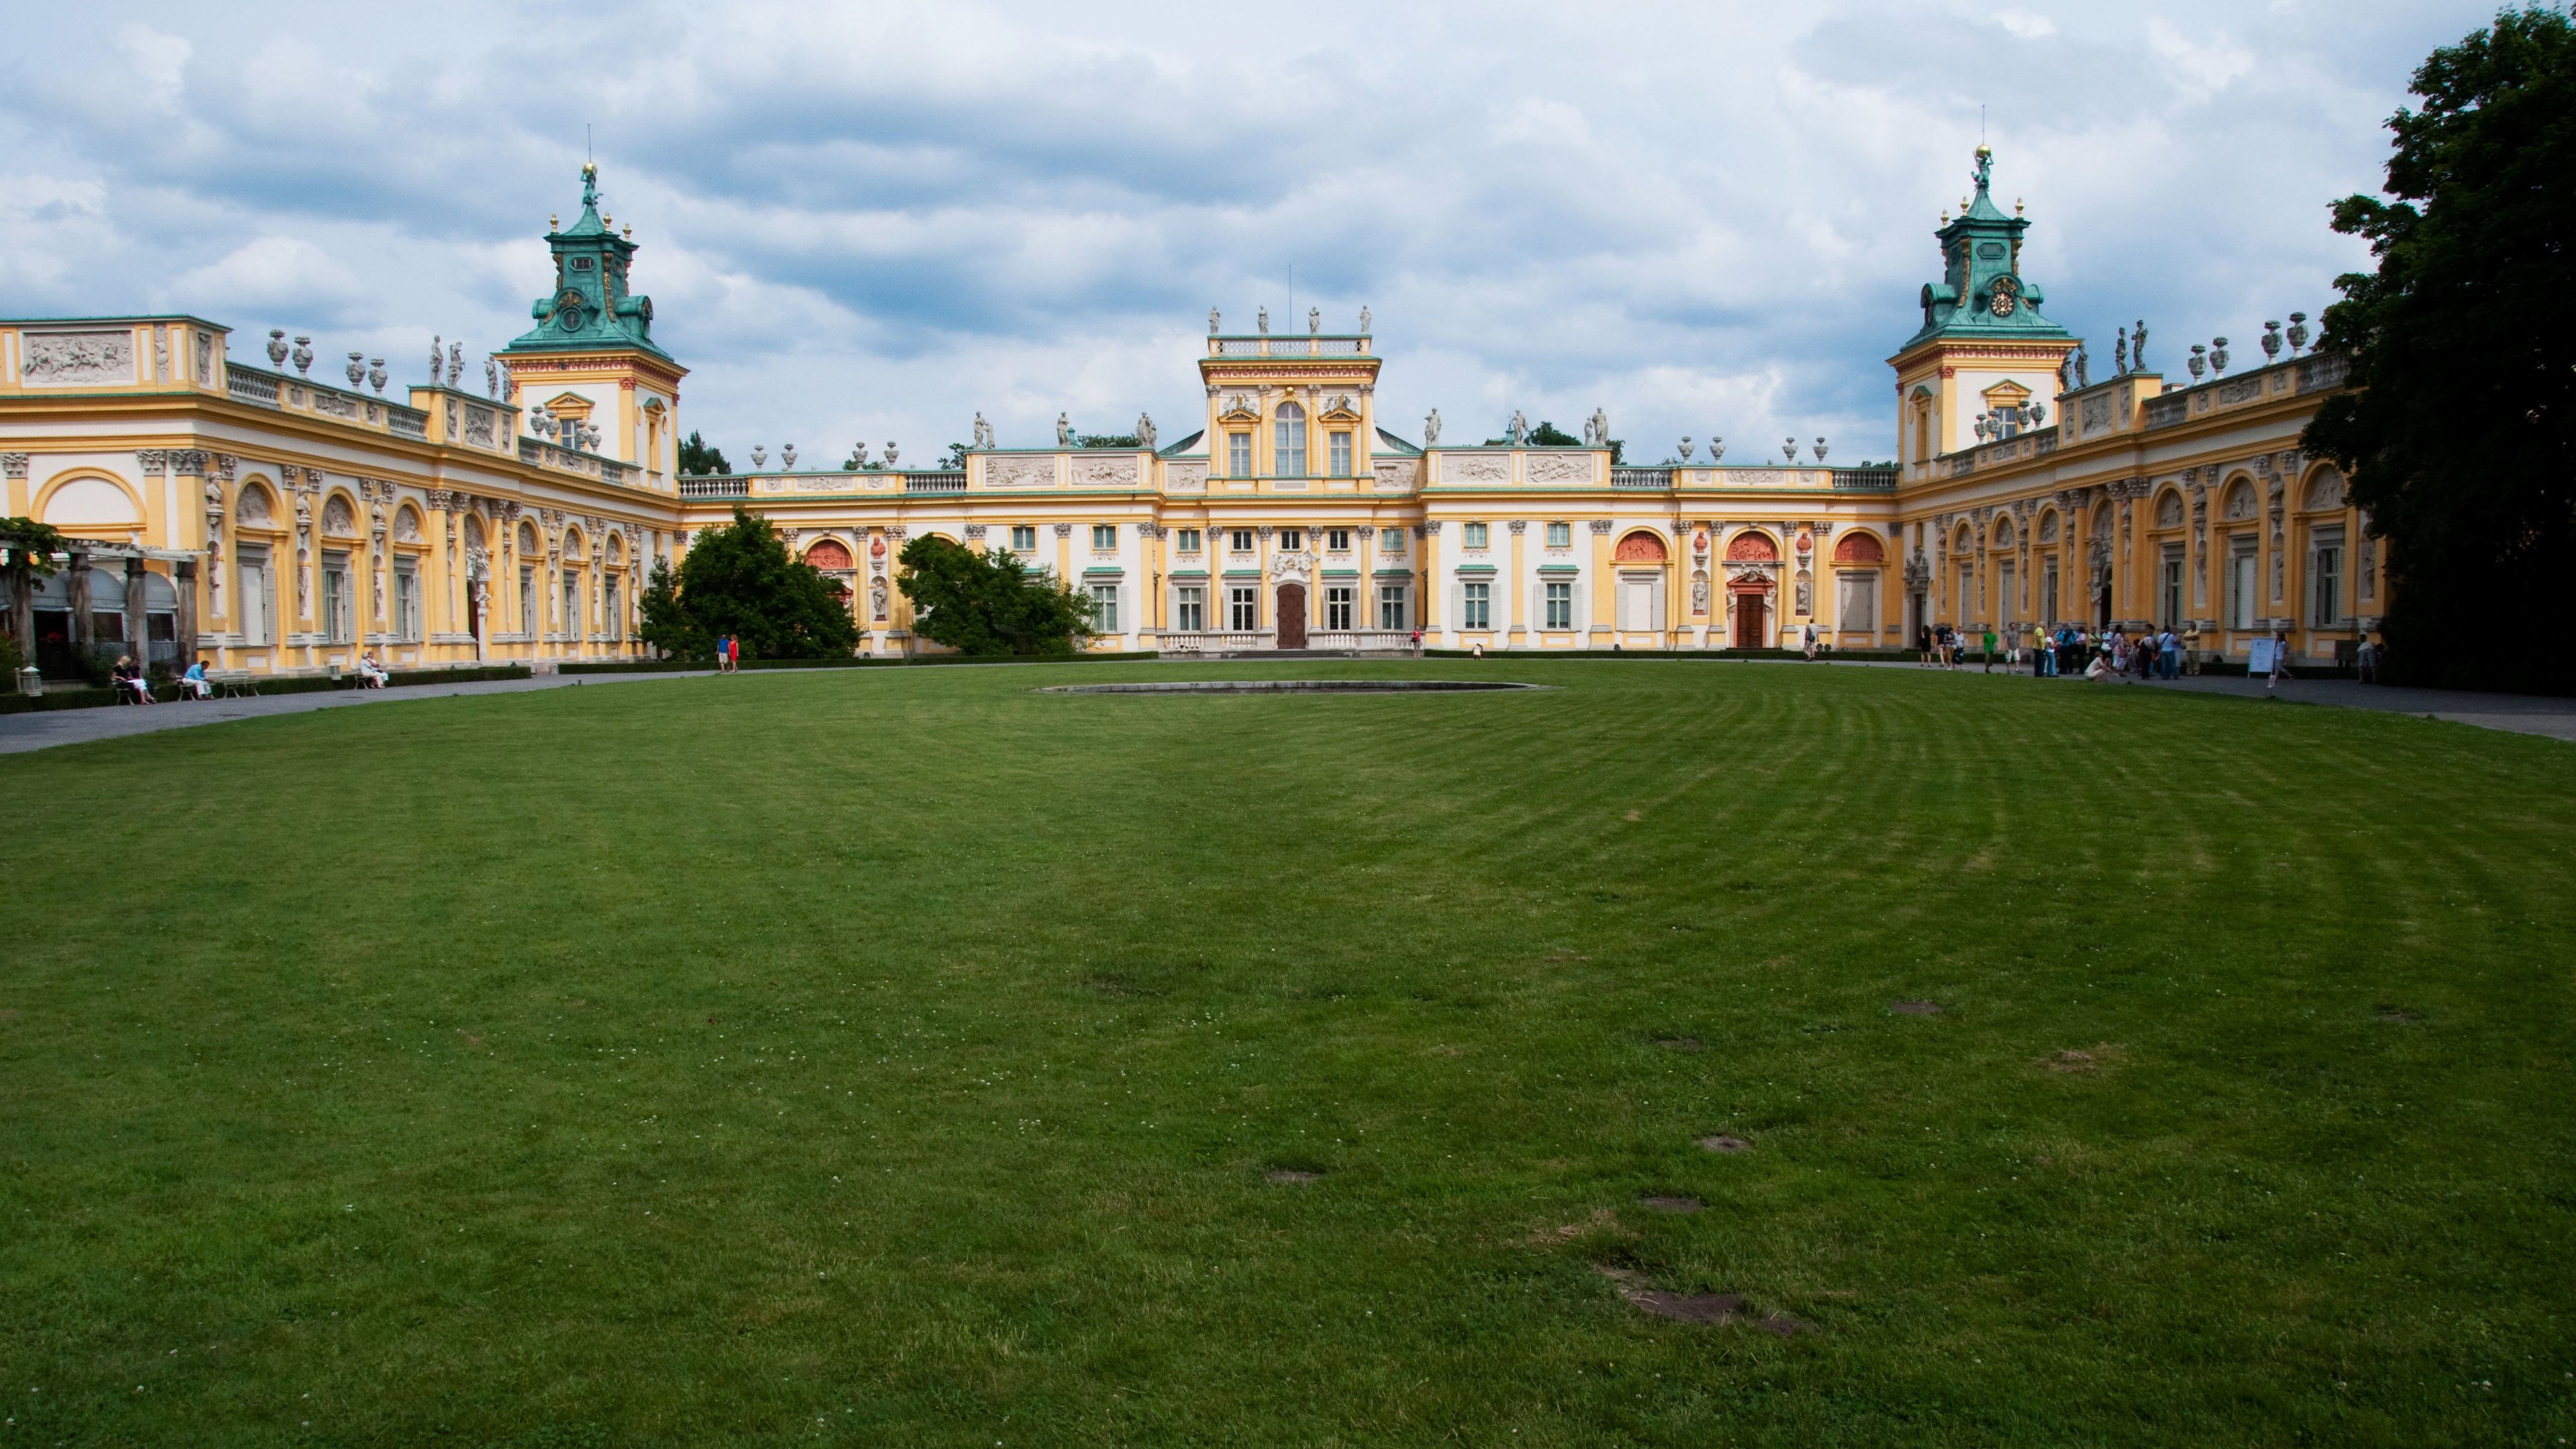 Sprawling grounds in front of Wilanow Palace in Warsaw